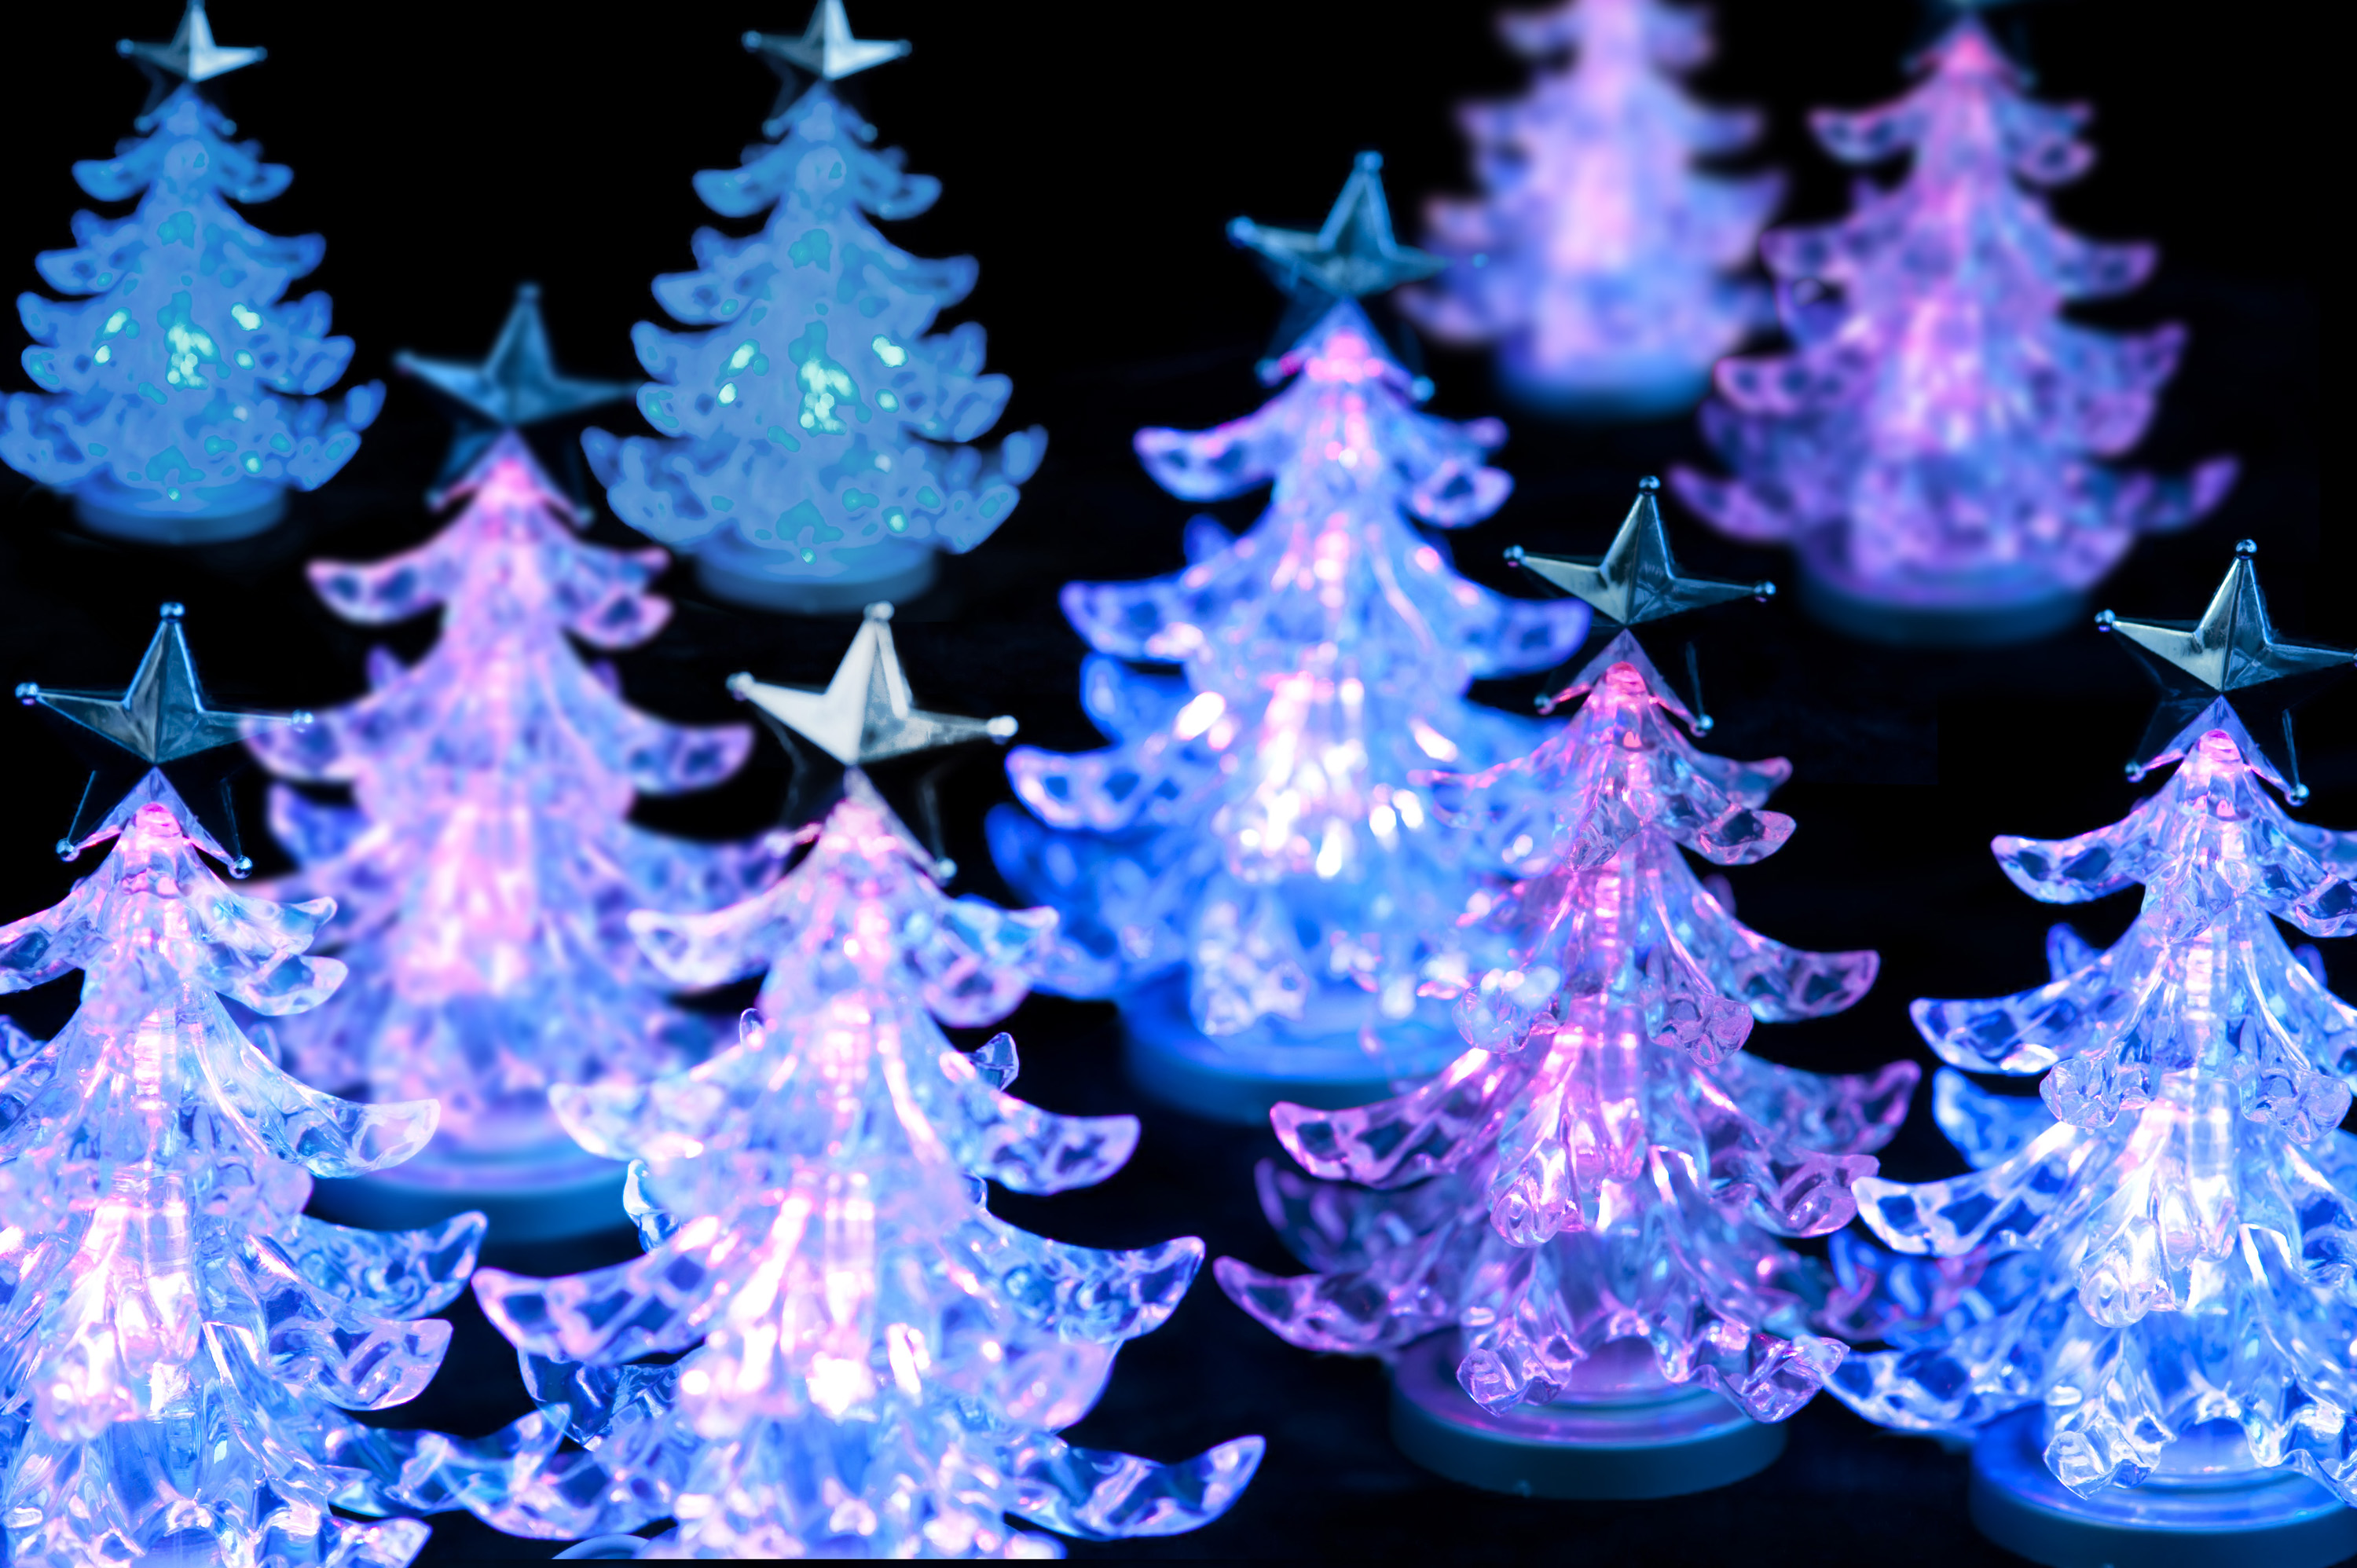 a forest of LED christmas trees, glowing blue and pink on a black background